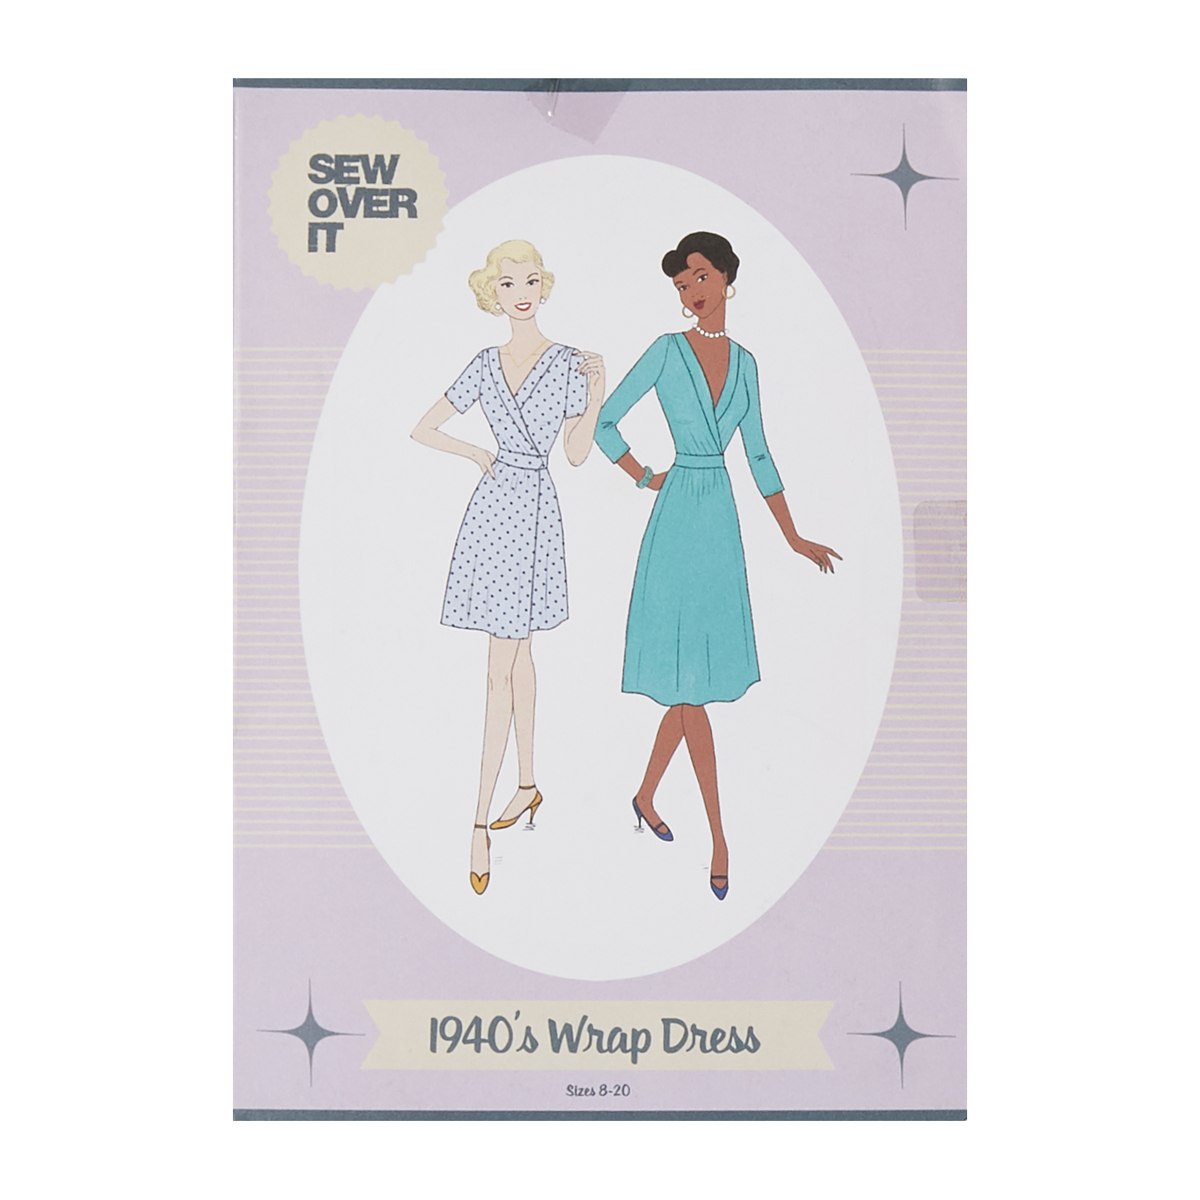 1950s Sewing Patterns | Swing and Wiggle Dresses, Skirts Sew Over It 1940s Wrap Dress Pattern $20.00 AT vintagedancer.com